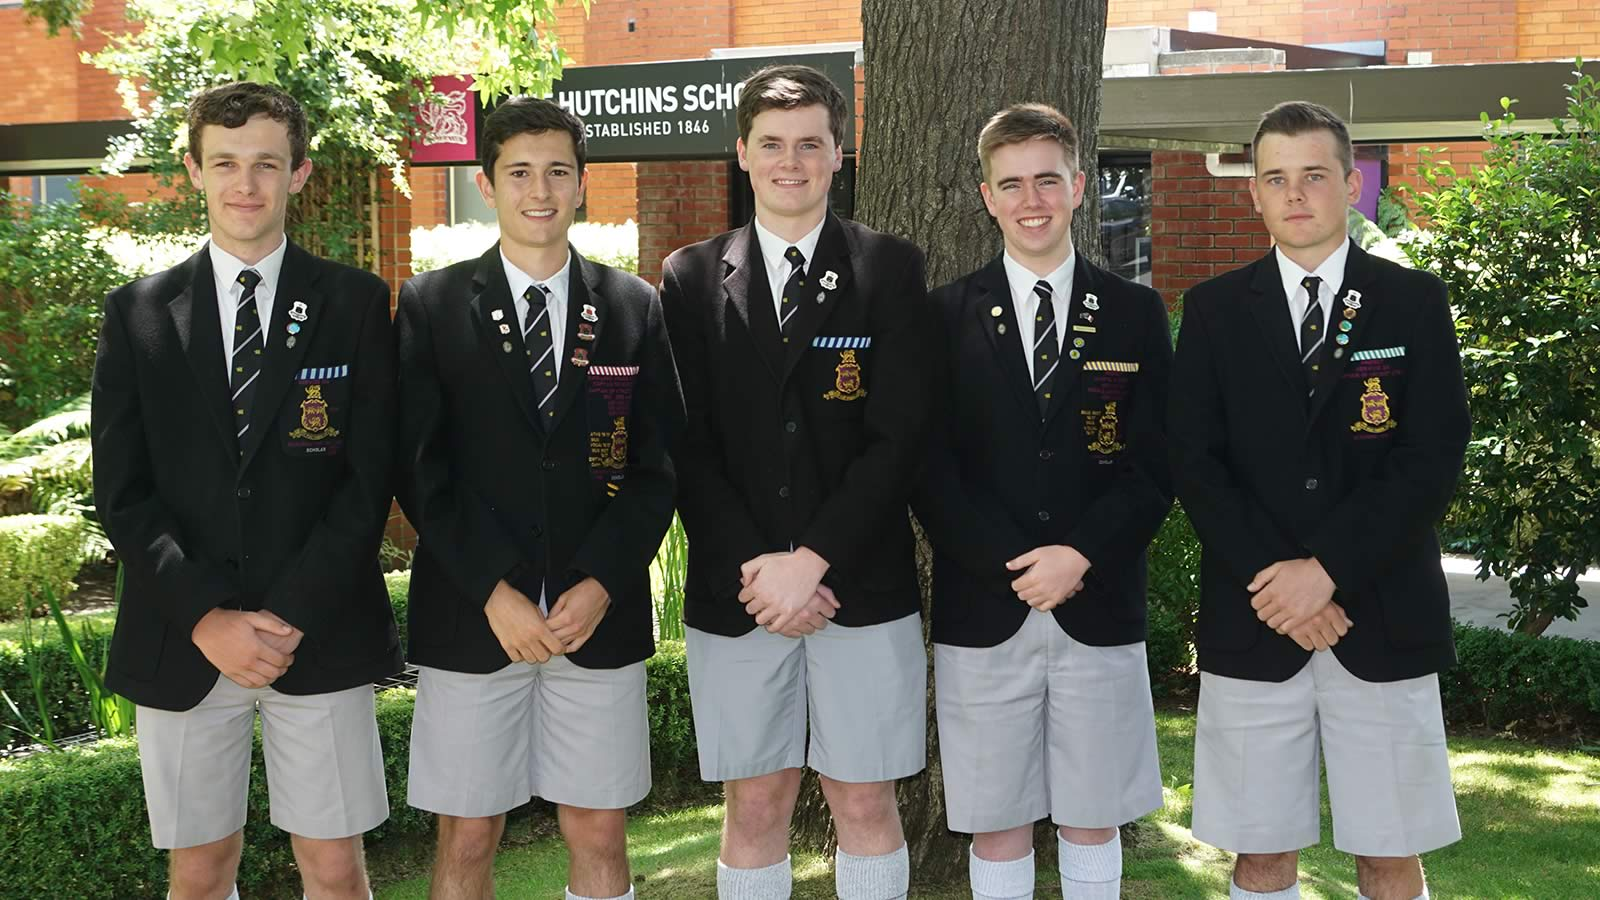 Students who received ATAR scores placing them in the top 1% of the state. Harrison Evans, James Tucker, Matthew Burgess, Thomas Young and Angus Szoke. Absent – Thomas Dunbabin and Luke West.